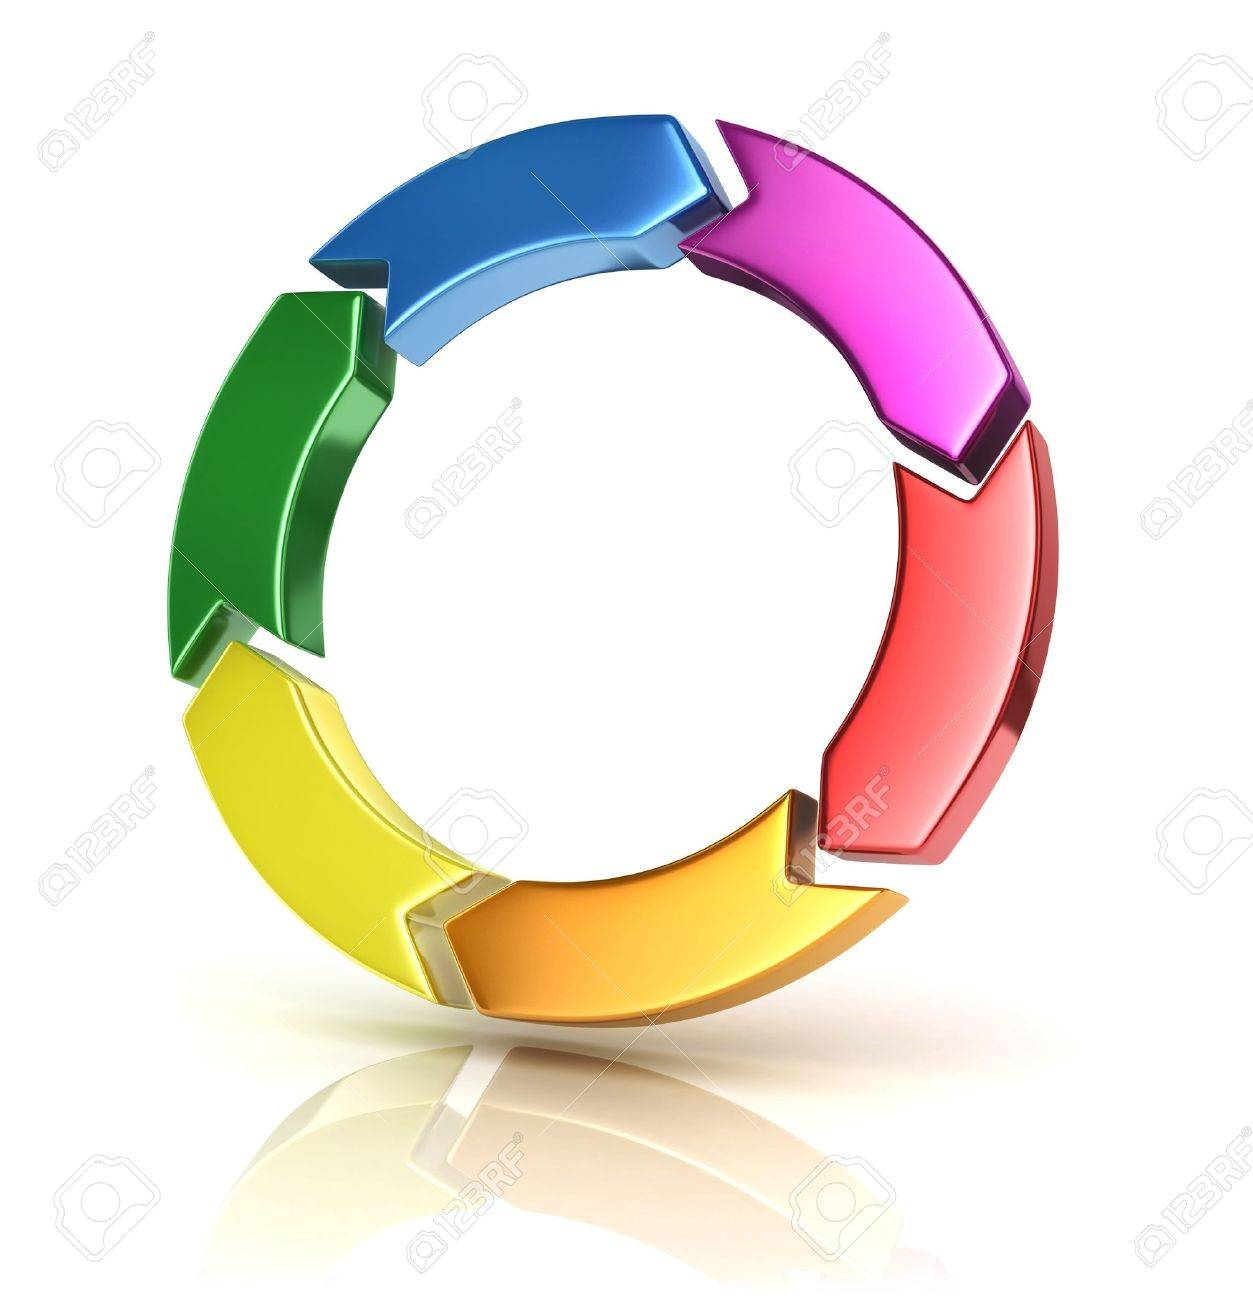 Process cycling arrow by arrow royalty free stock images image - Recycling Process Colorful Arrows Forming Circle Cycle 3d Concept Stock Photo